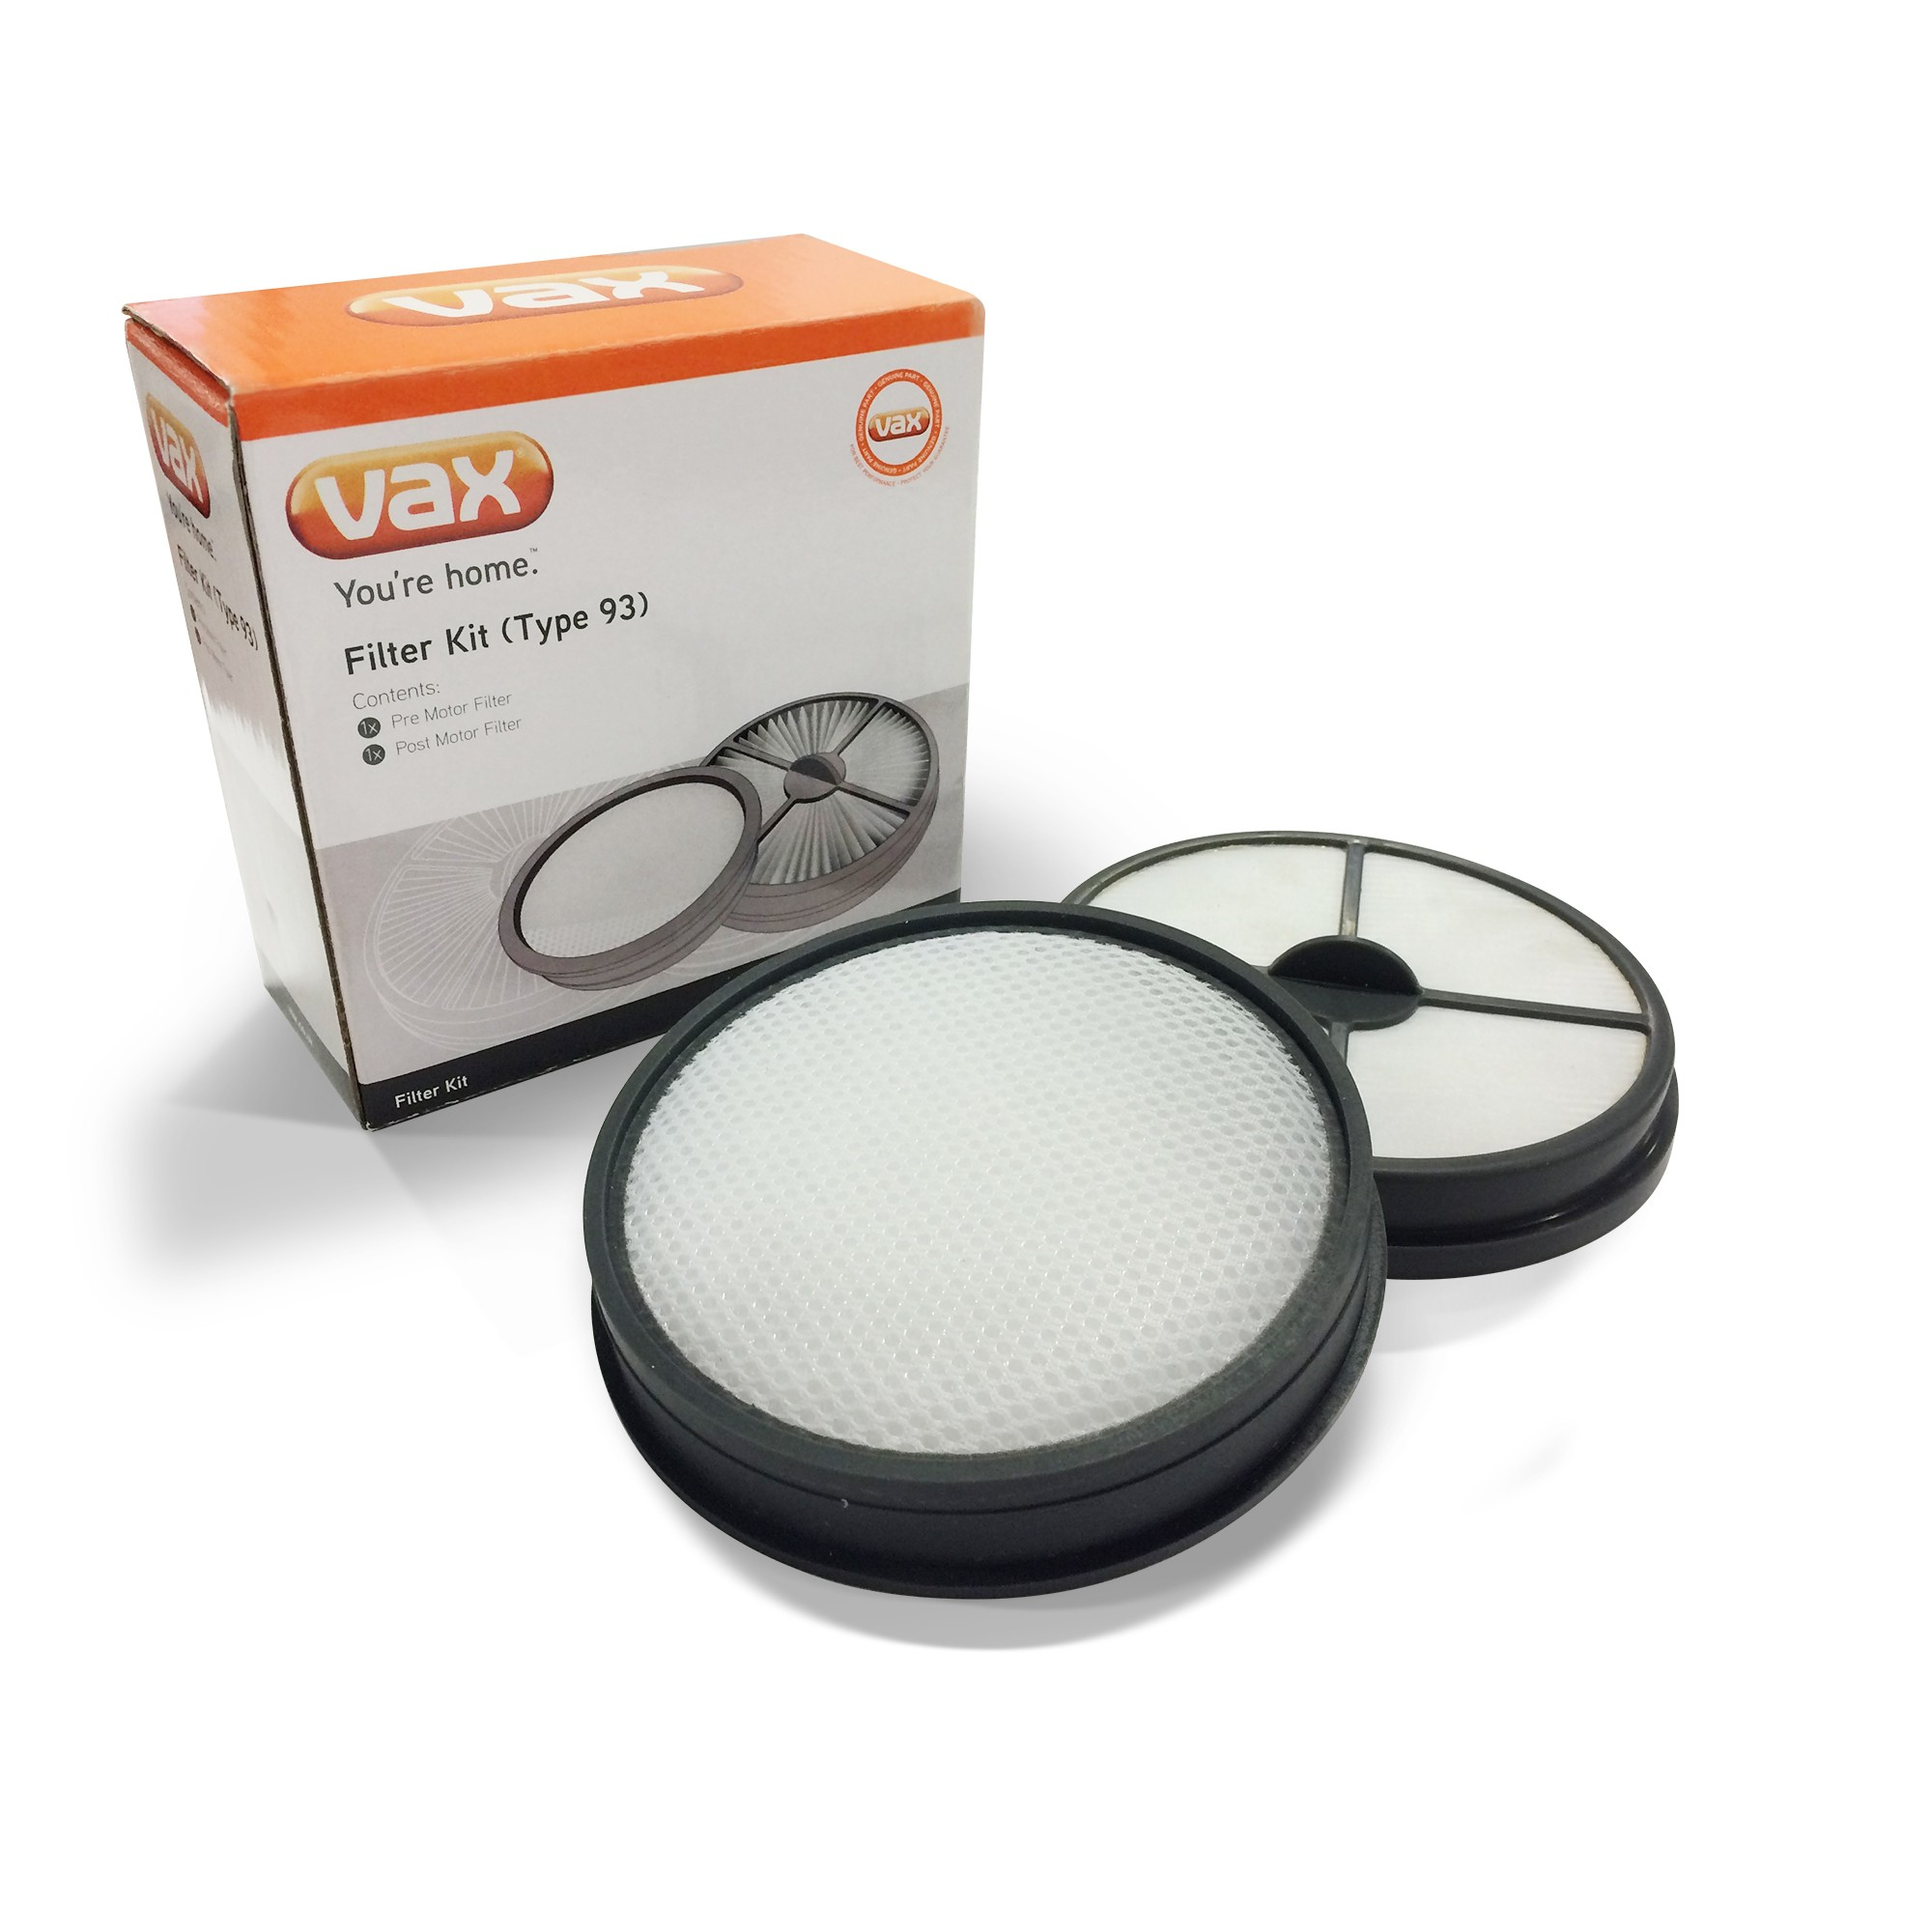 Vax Filter Kit (Type 93)